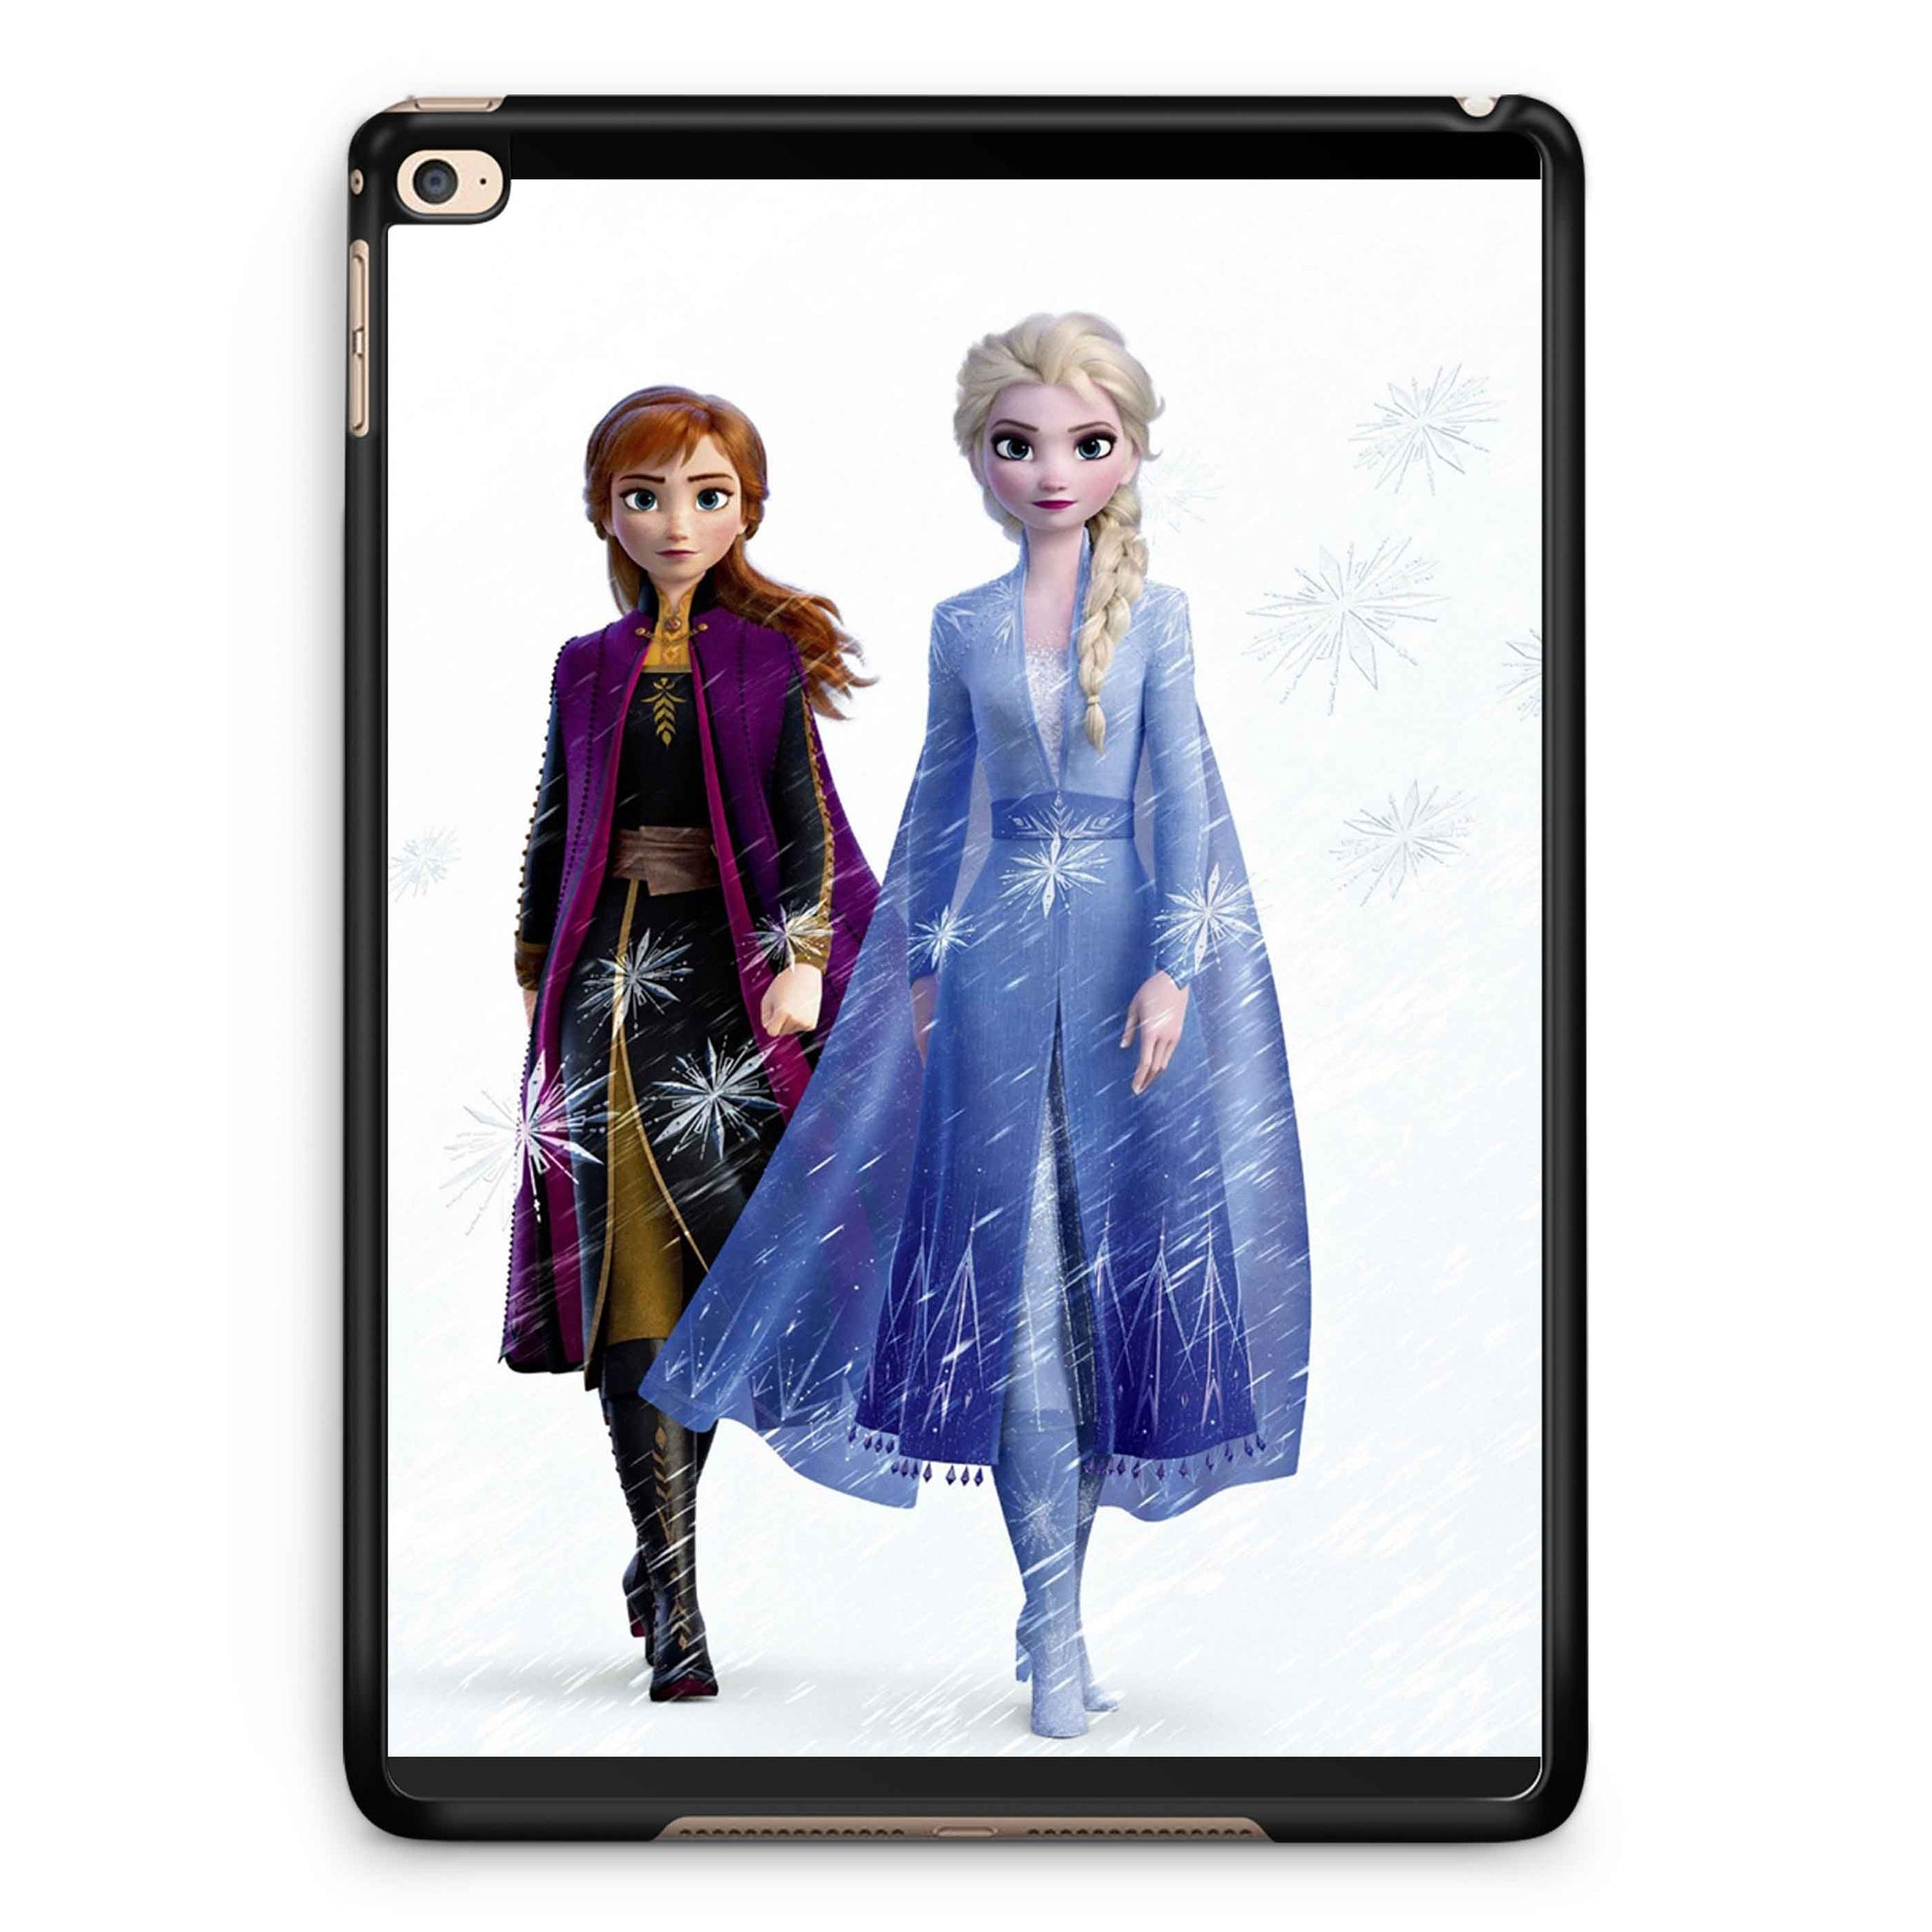 Frozen 2 Elsa And Anna Cover iPad 2 / 3 / 4 / 5 / 6| iPad Air / Air 2 | iPad Mini 1 / 2 / 3 / 4 | iPad Pro Case